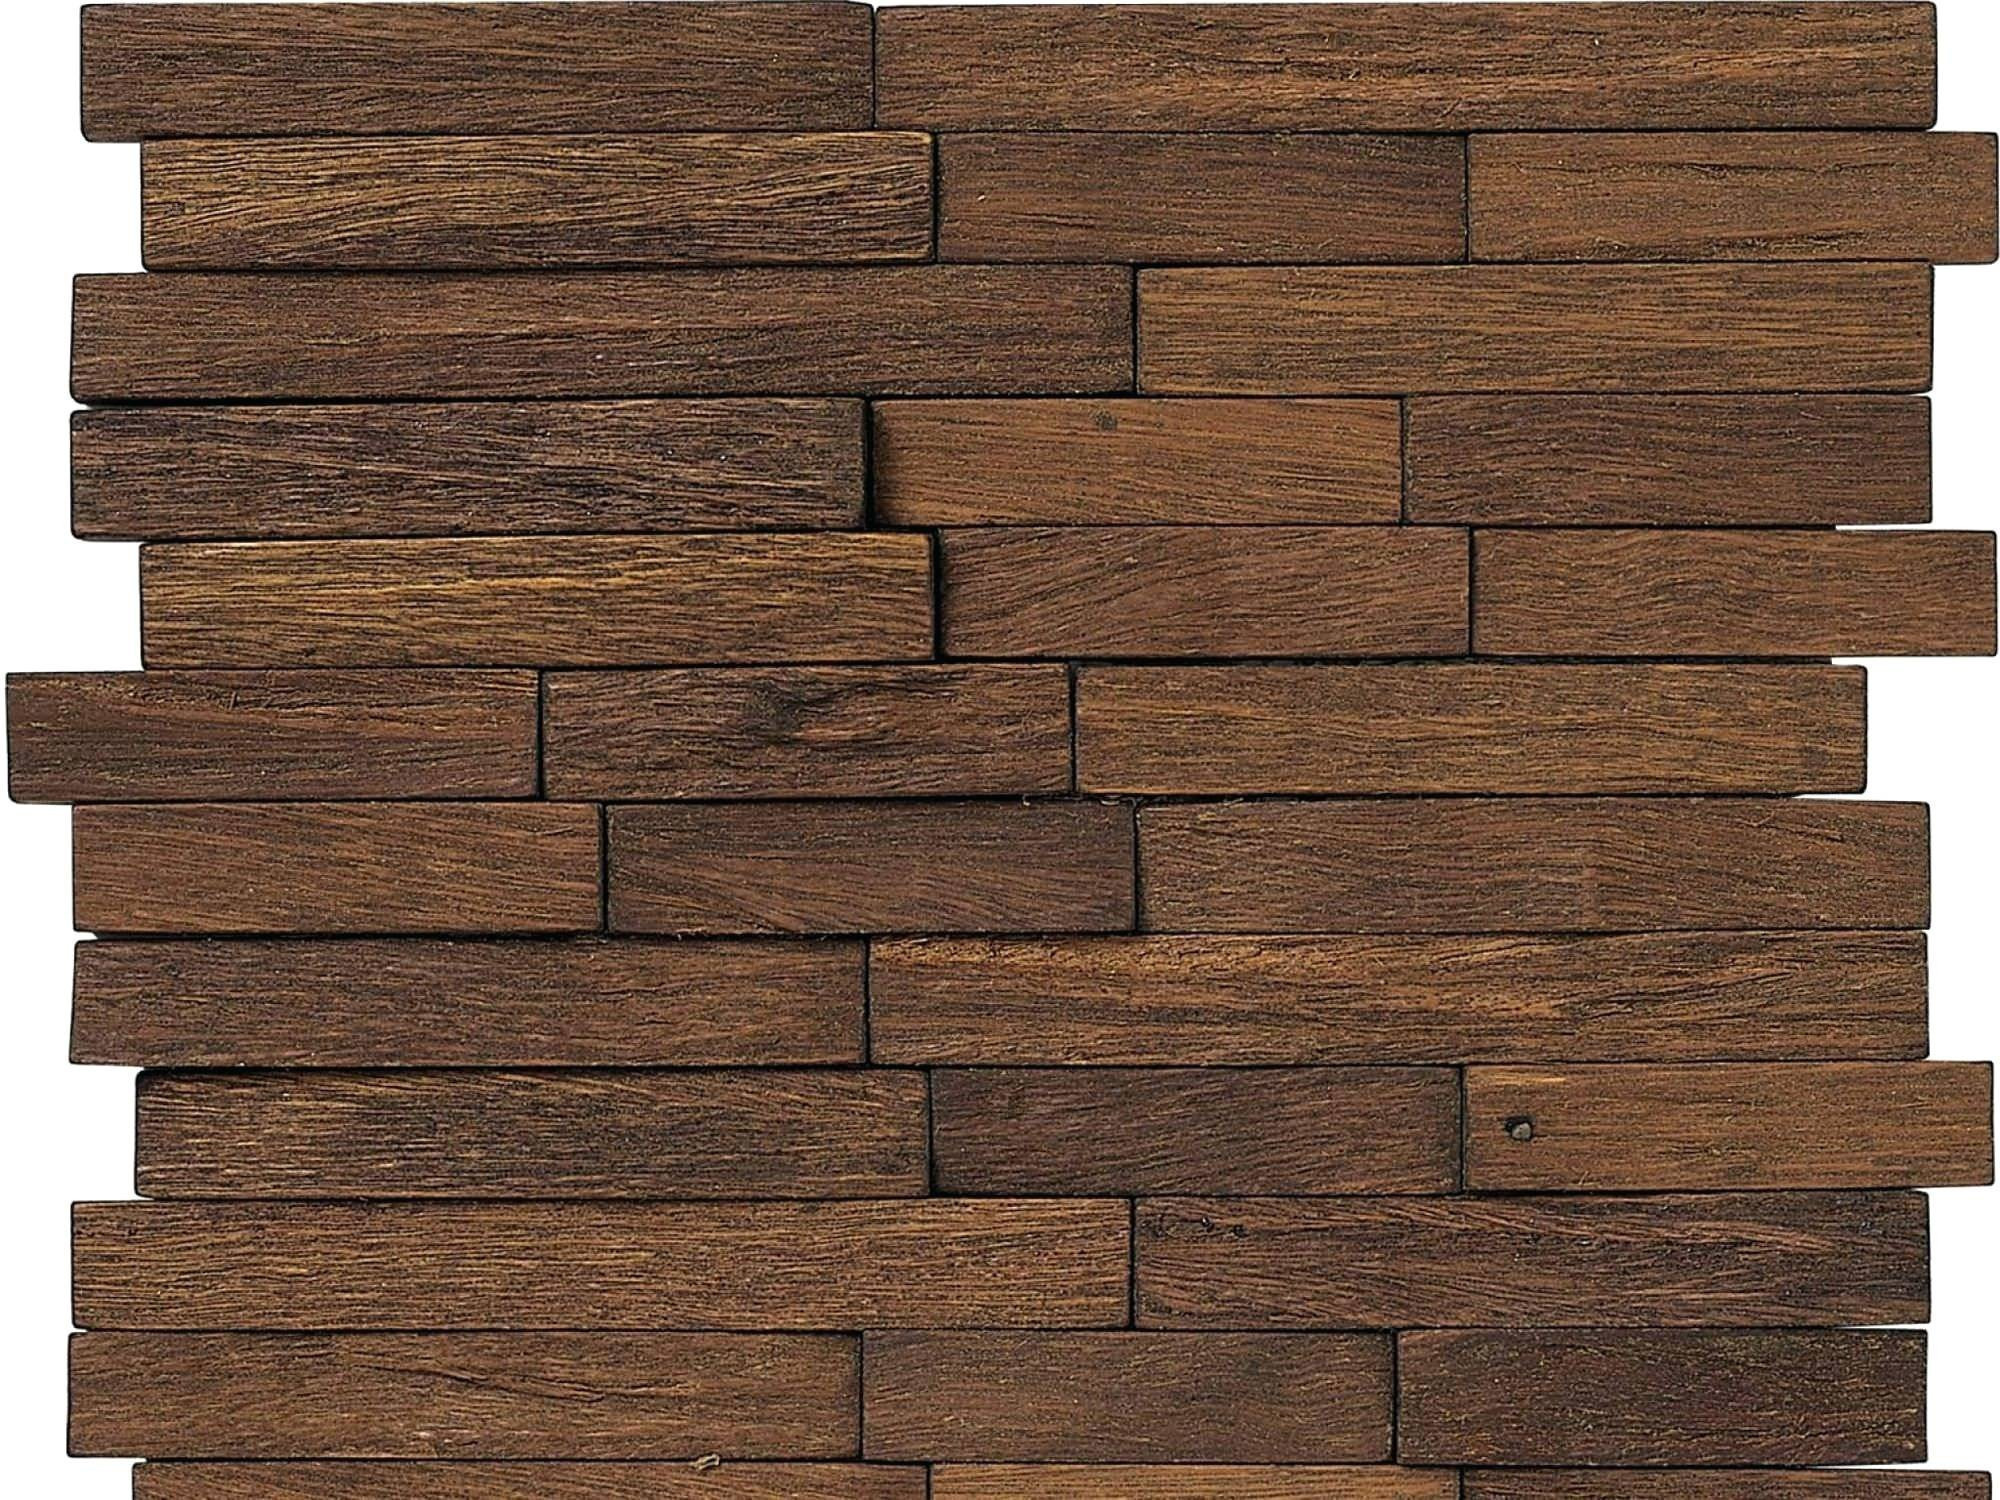 Hardwood Floor Refinishing Metro Detroit Of the Wood Maker Page 2 Wood Wallpaper for New Metal Wall Art Panels Fresh 1 Kirkland Wall Decor Home Design 0d Ideas Of Wood 30 Inspirational Wood Floors In Kitchen Trinitycountyfoodbank